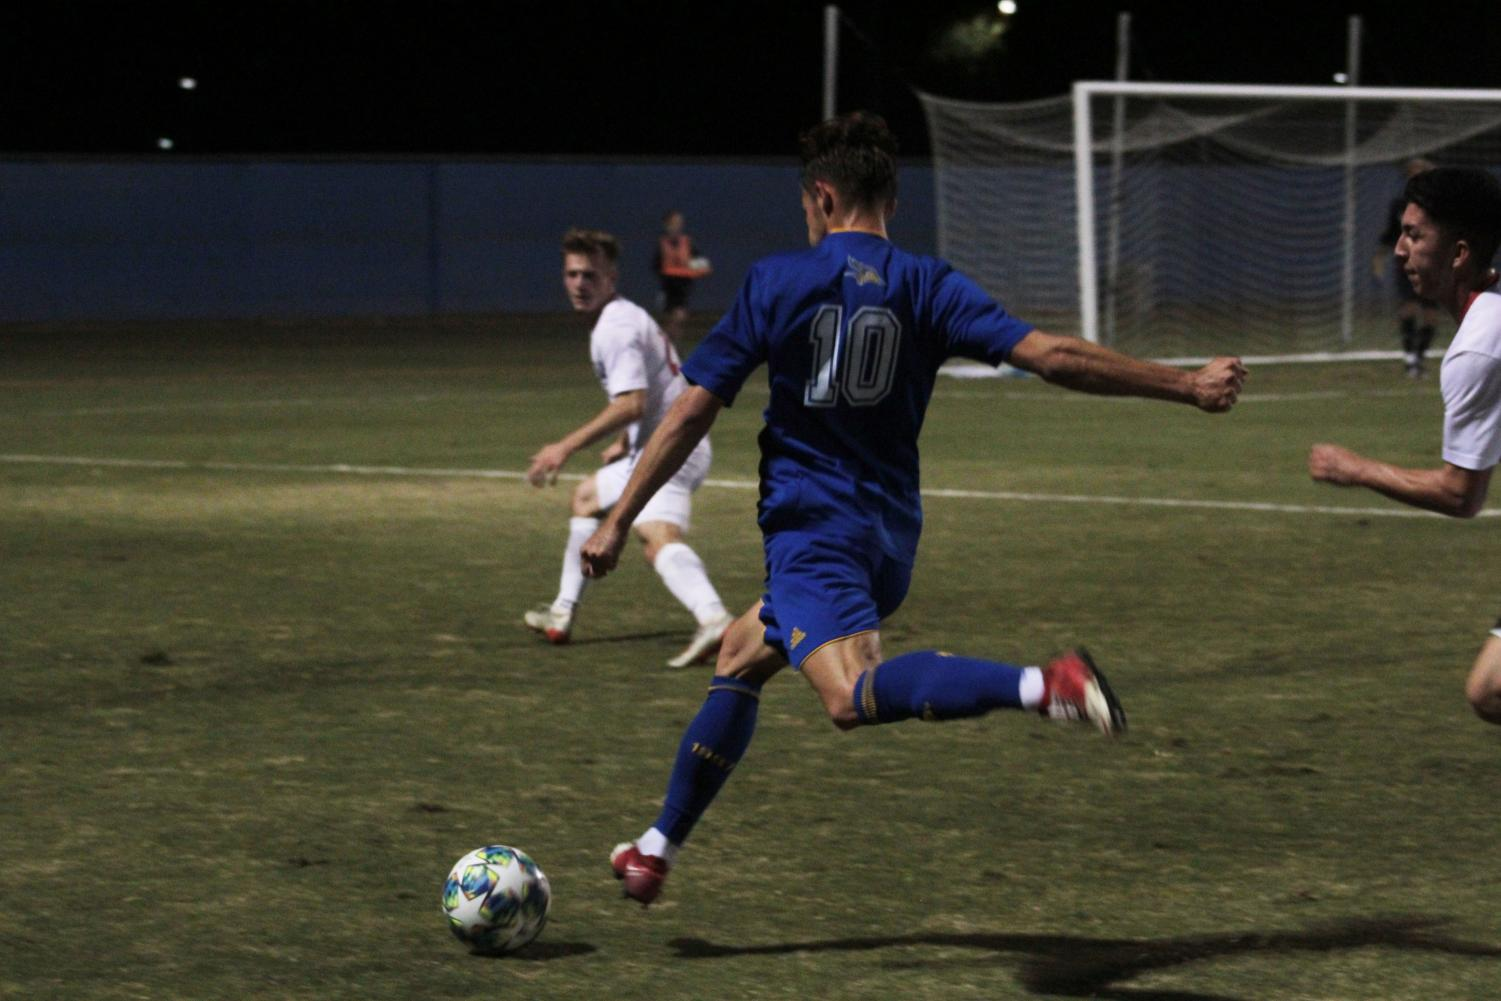 Senior forward Niklas Koerber assisted in the first goal scored by Ryan Goldsmith (not pictured) on Oct. 19 at the main soccer field.